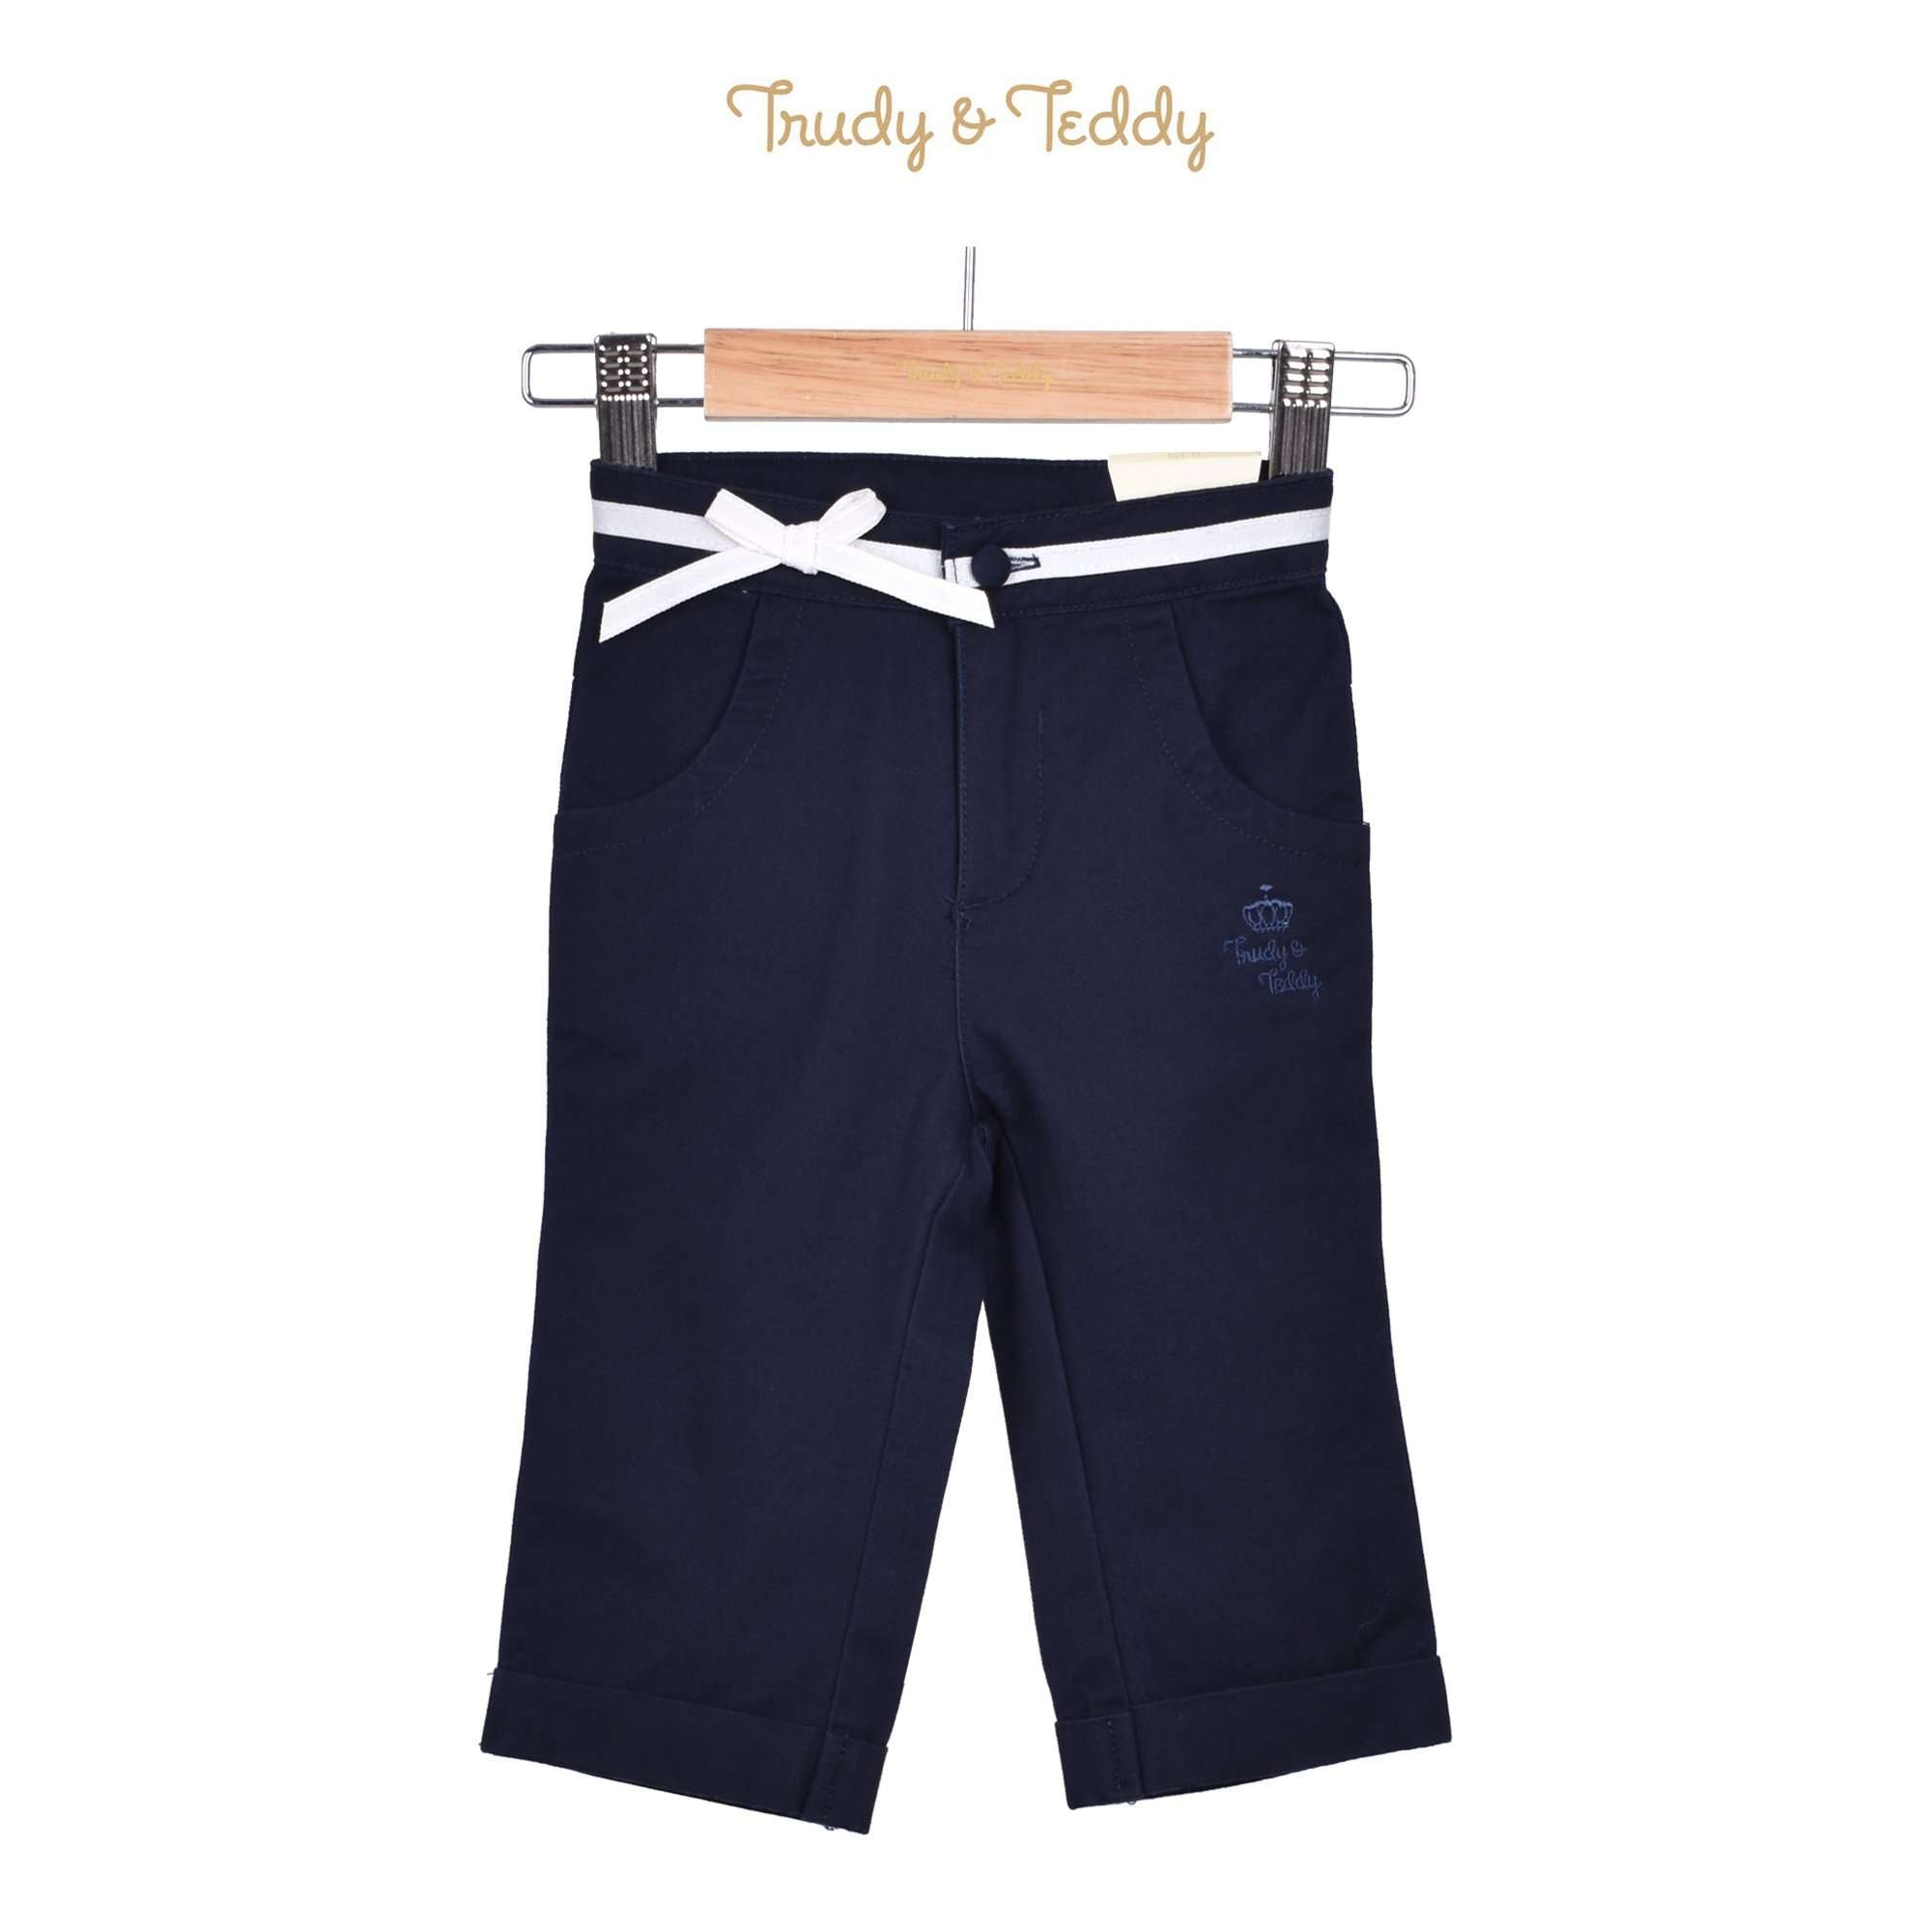 Trudy & Teddy Toddler Girl Capri Pants - Navy 815146-251 : Buy Trudy & Teddy online at CMG.MY